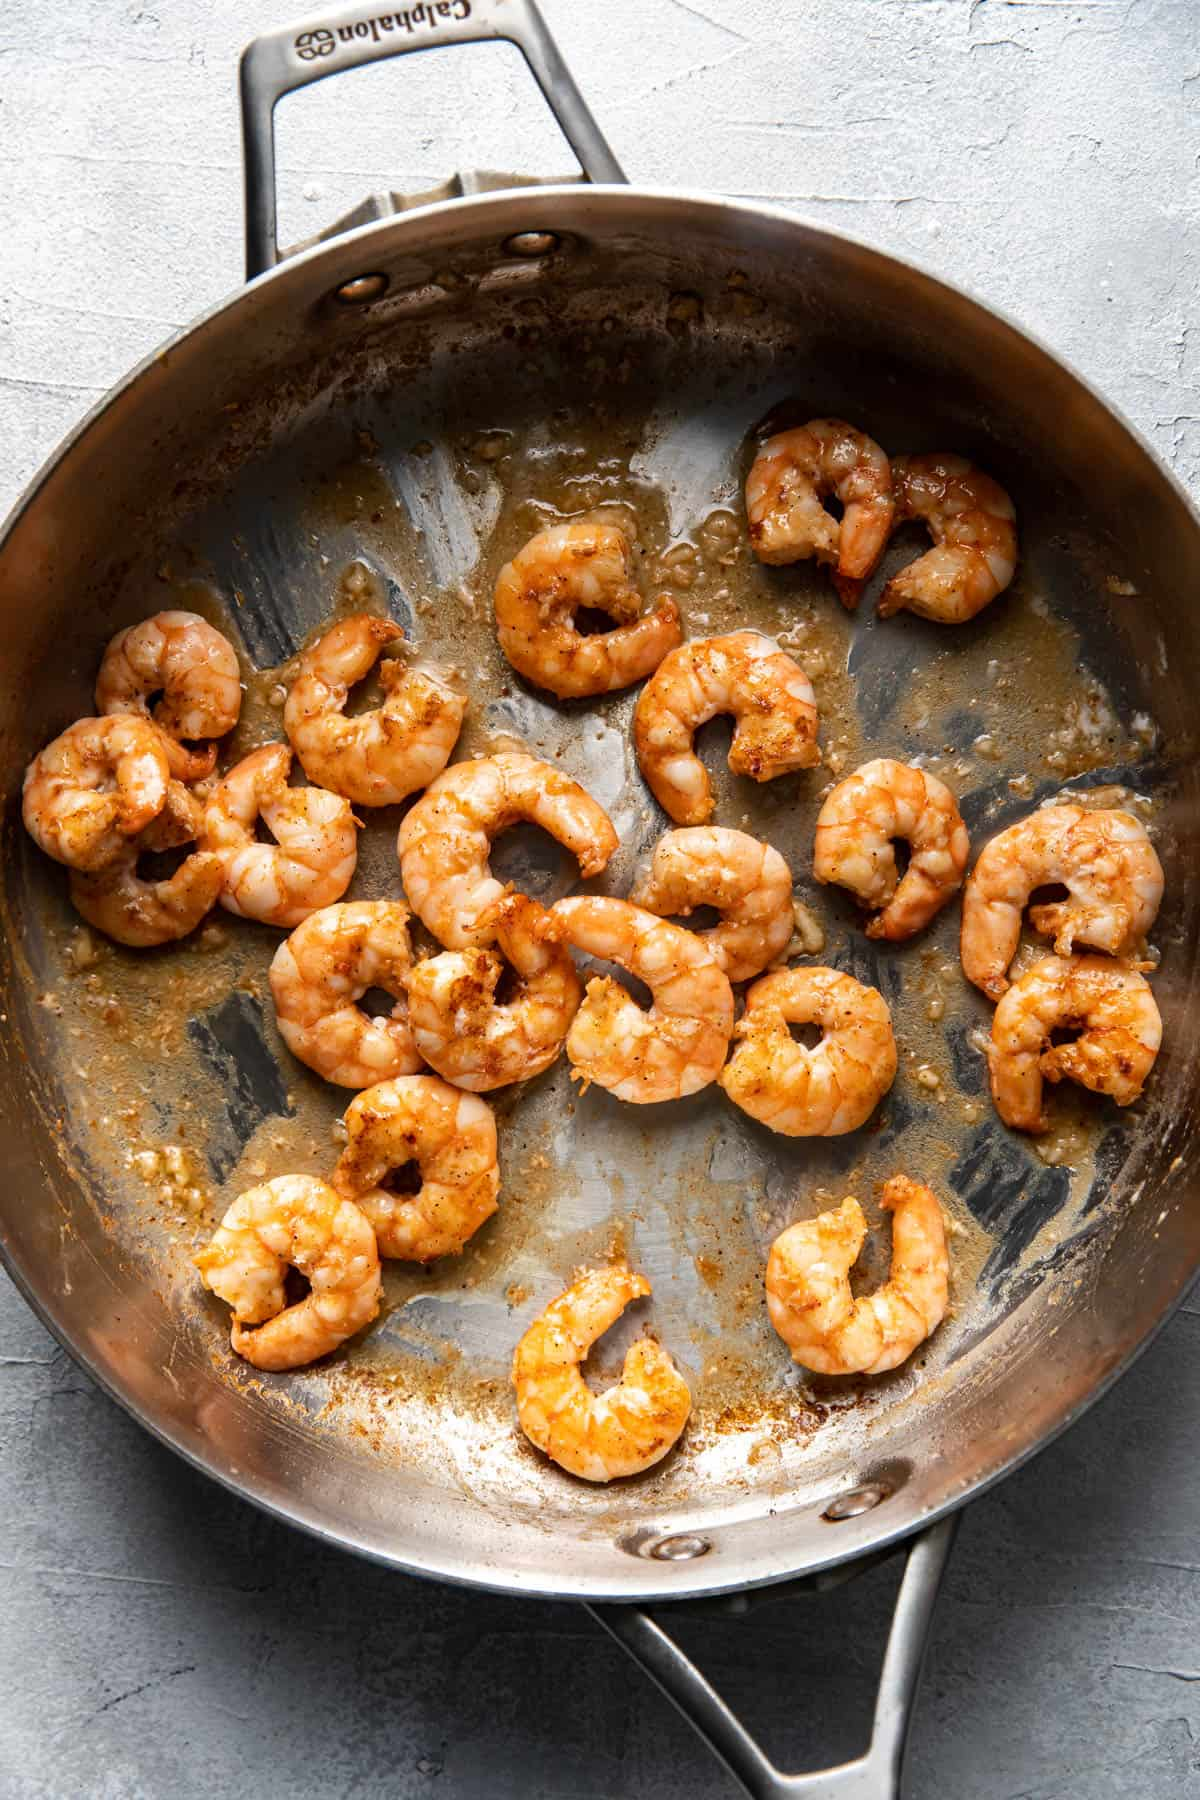 cooked shrimp in a saute pan.